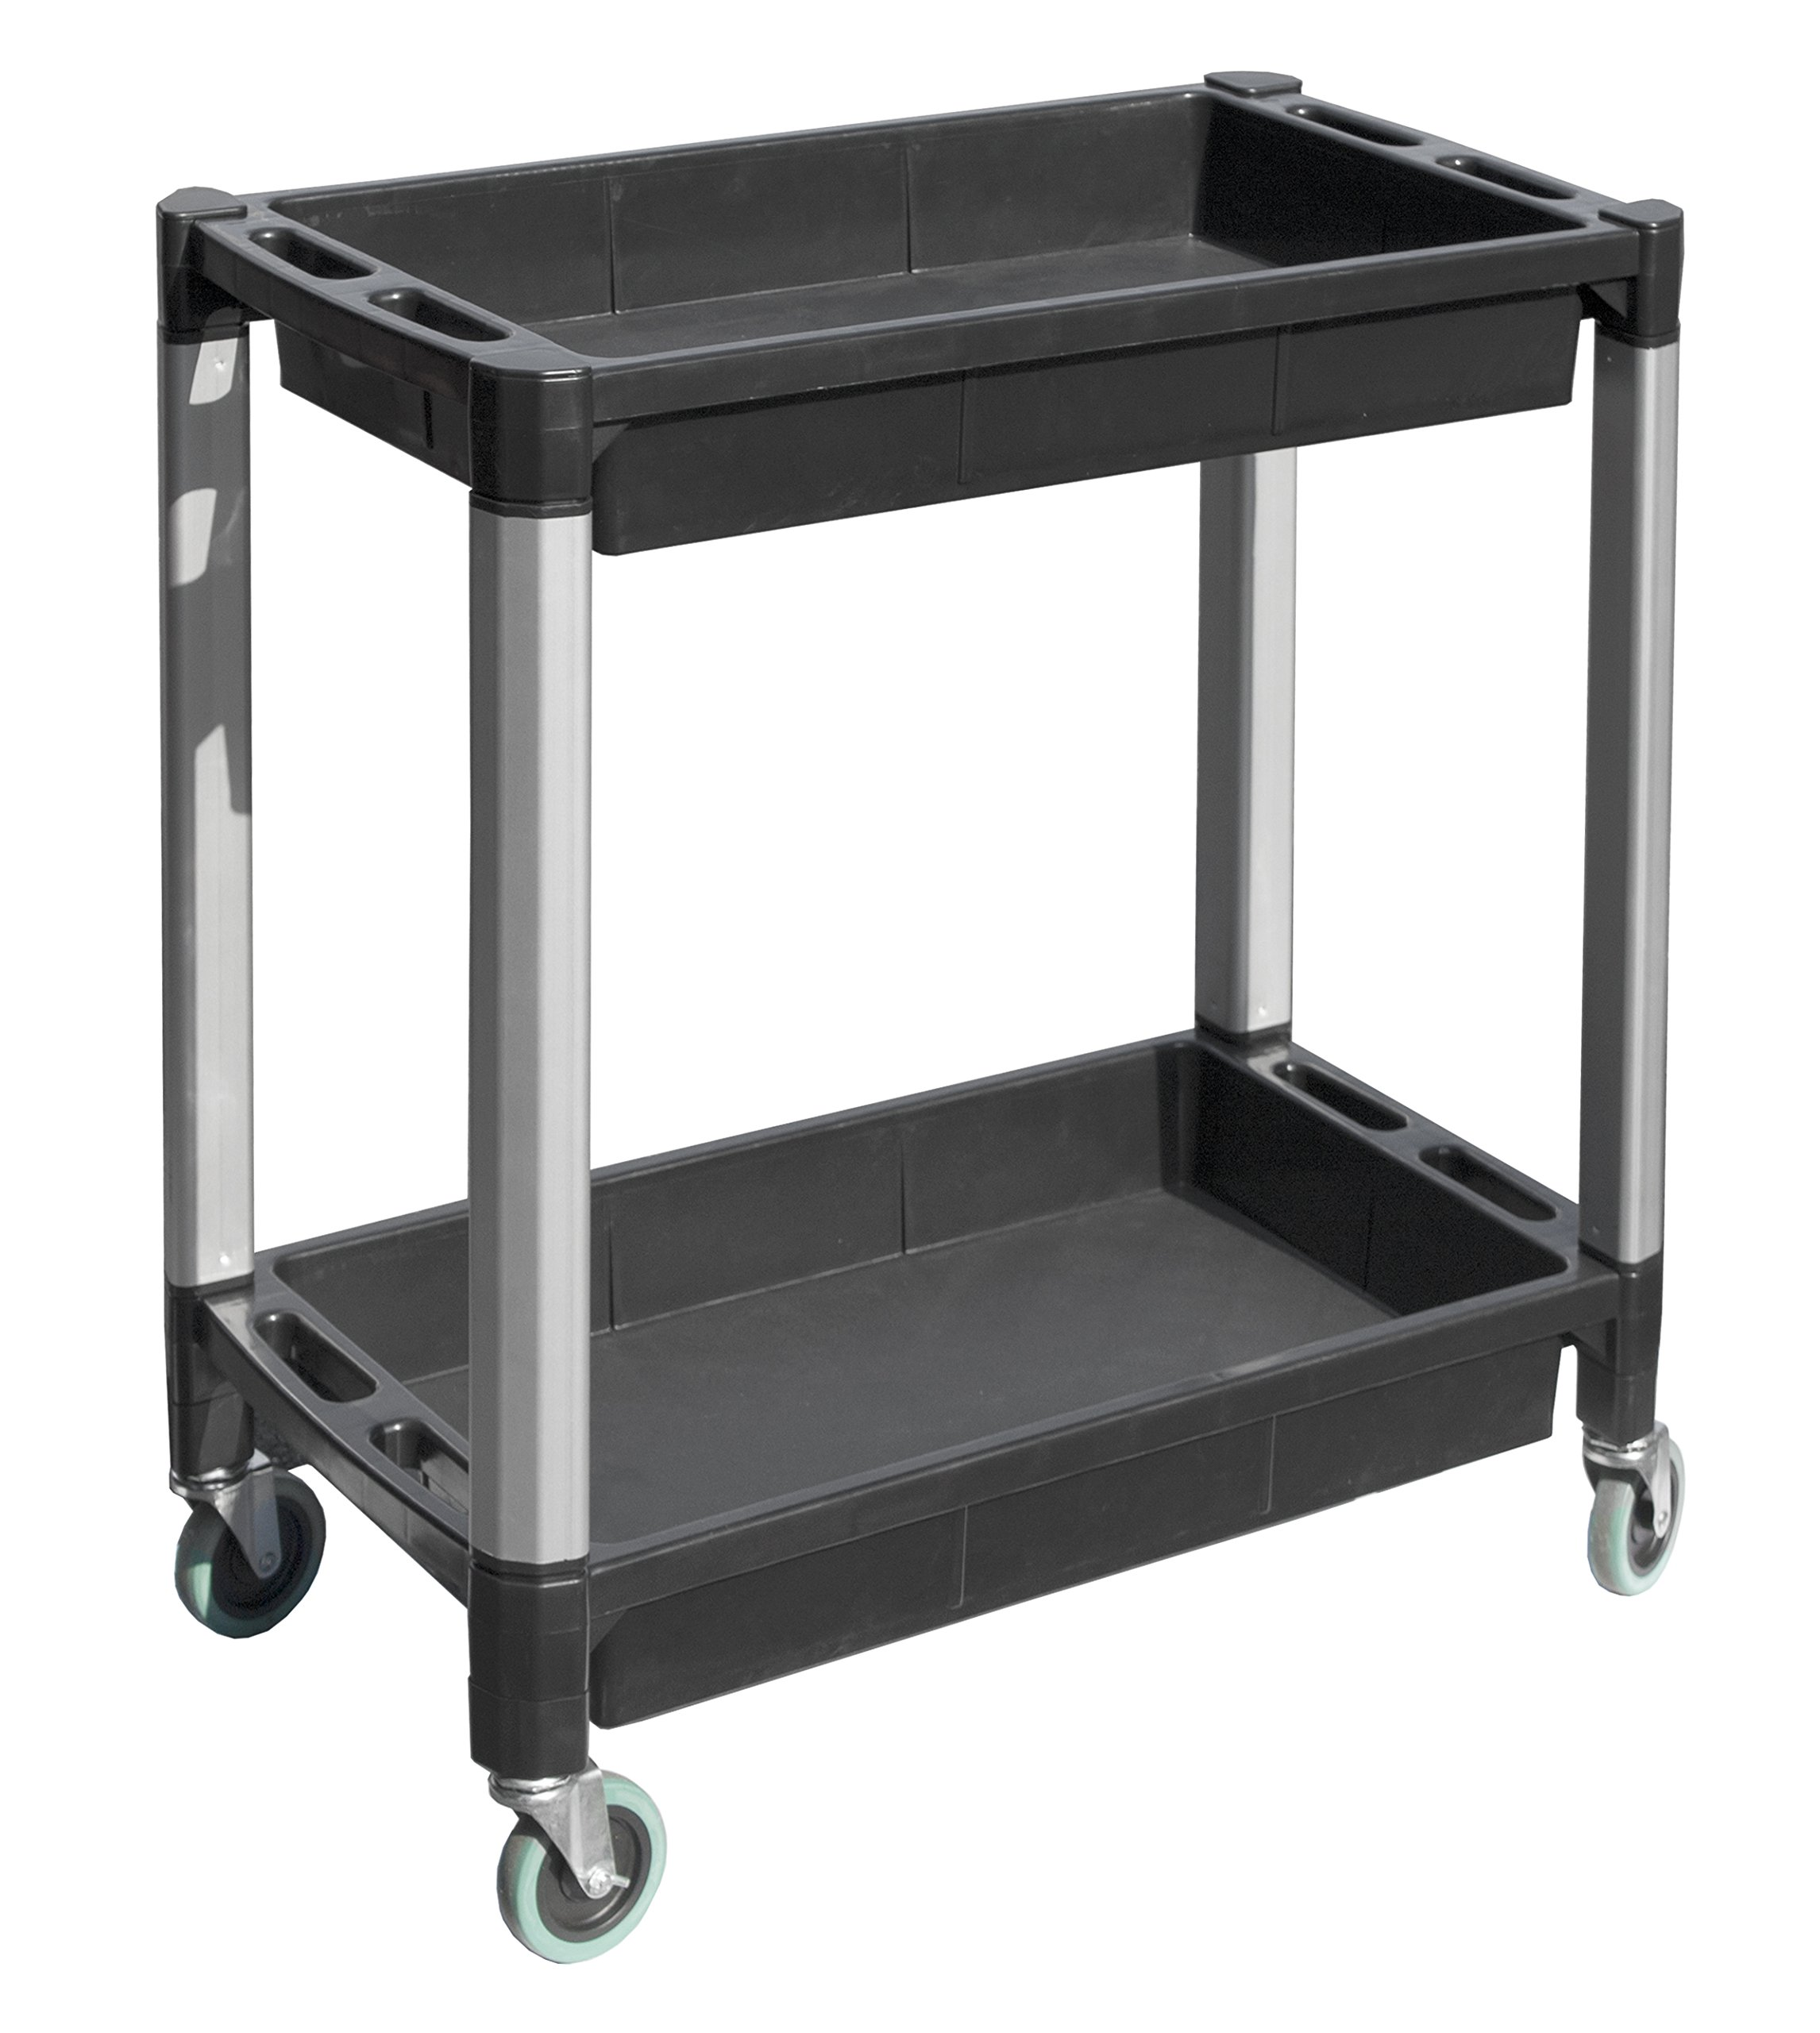 MaxWorks 80384 Black and Gray Two-Tray Service/Utility Cart With Aluminum Legs And 4'' Diameter Swivel Castors